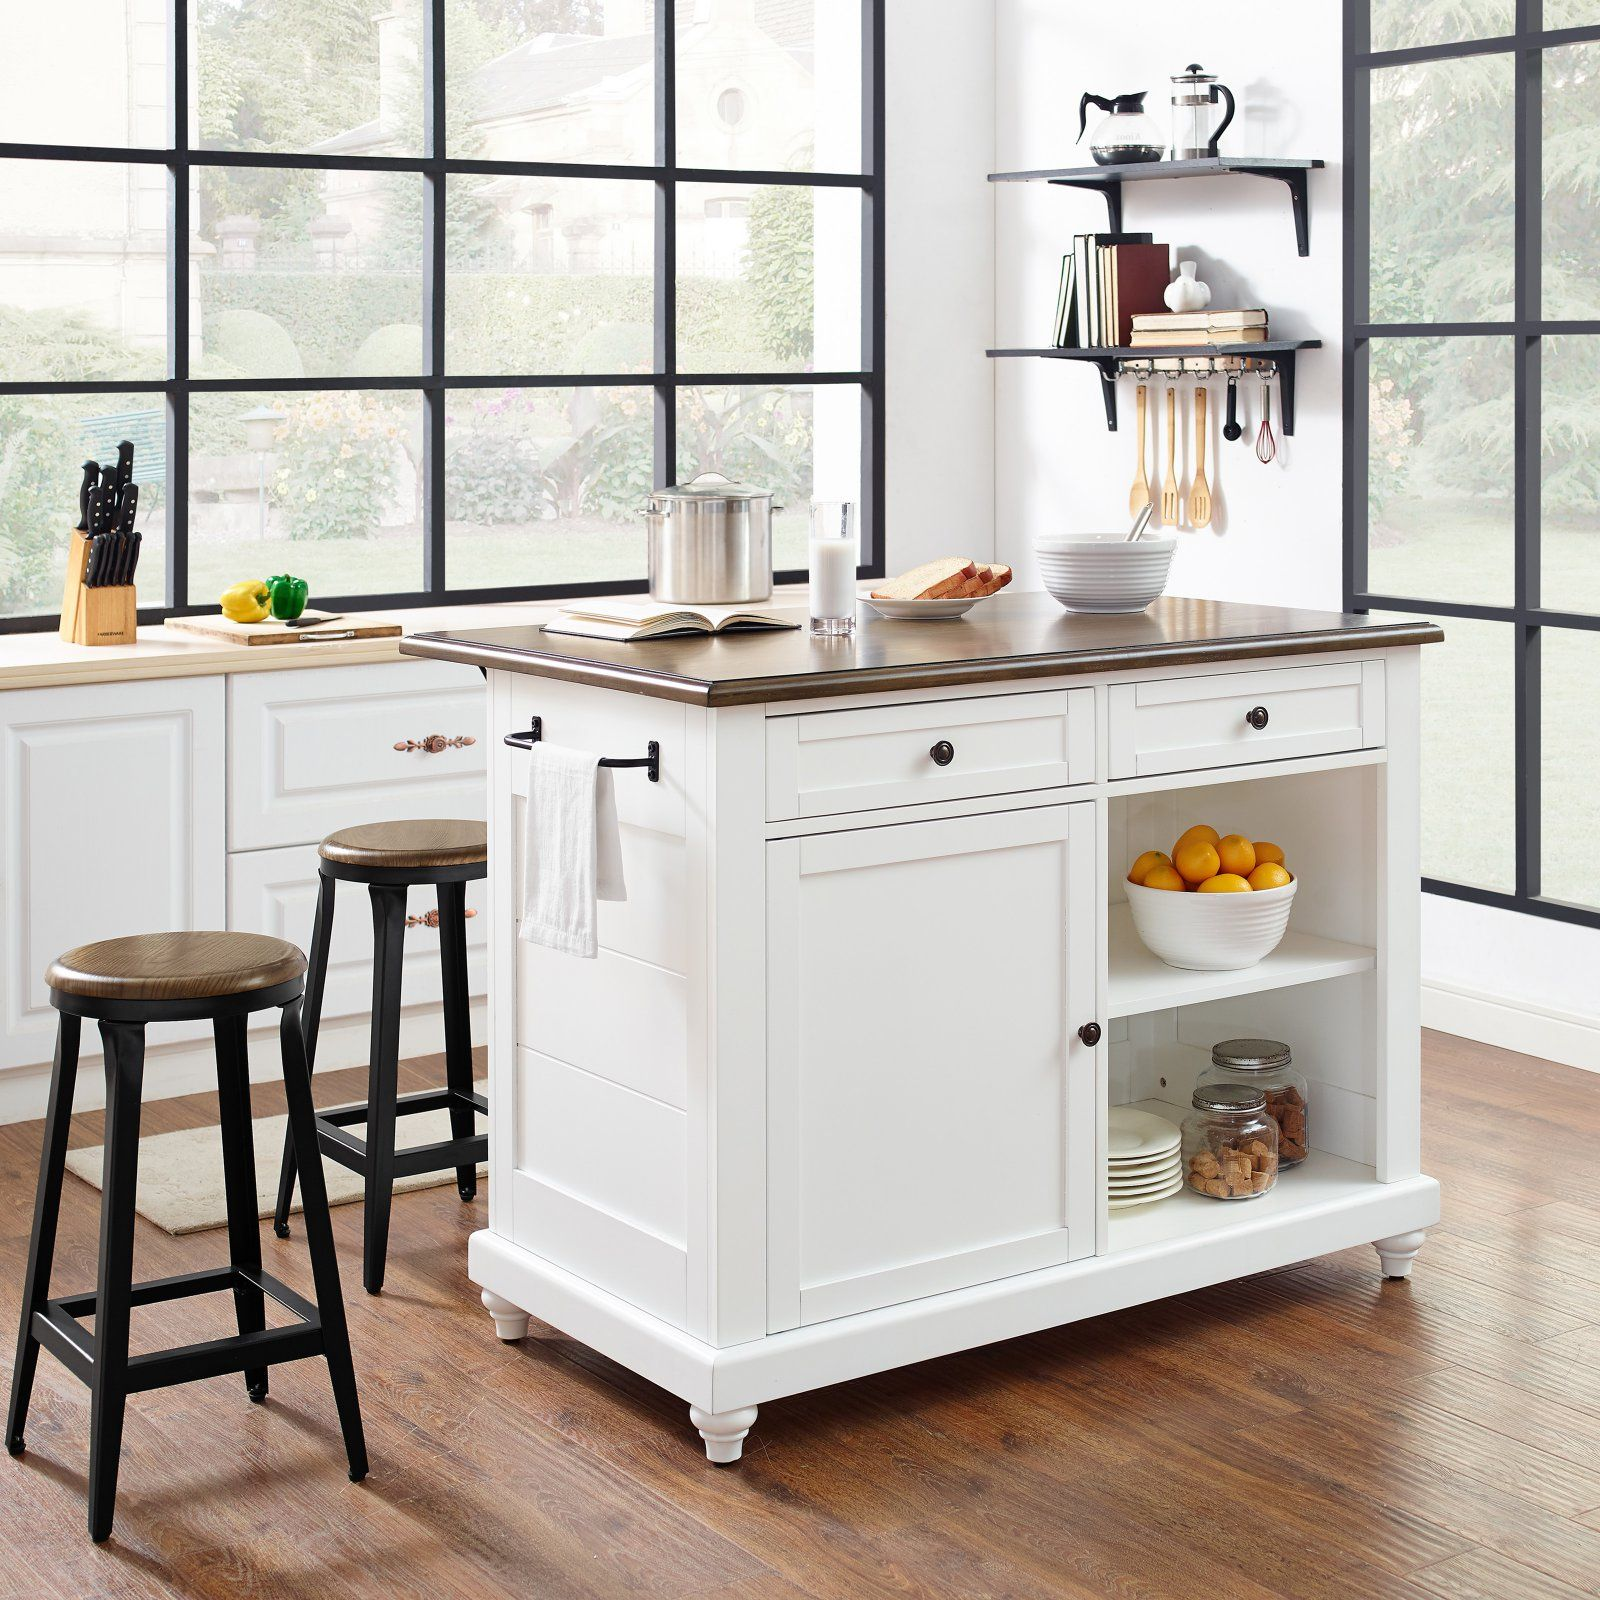 dorel living kelsey kitchen island with stools products in 2019 rh pinterest com